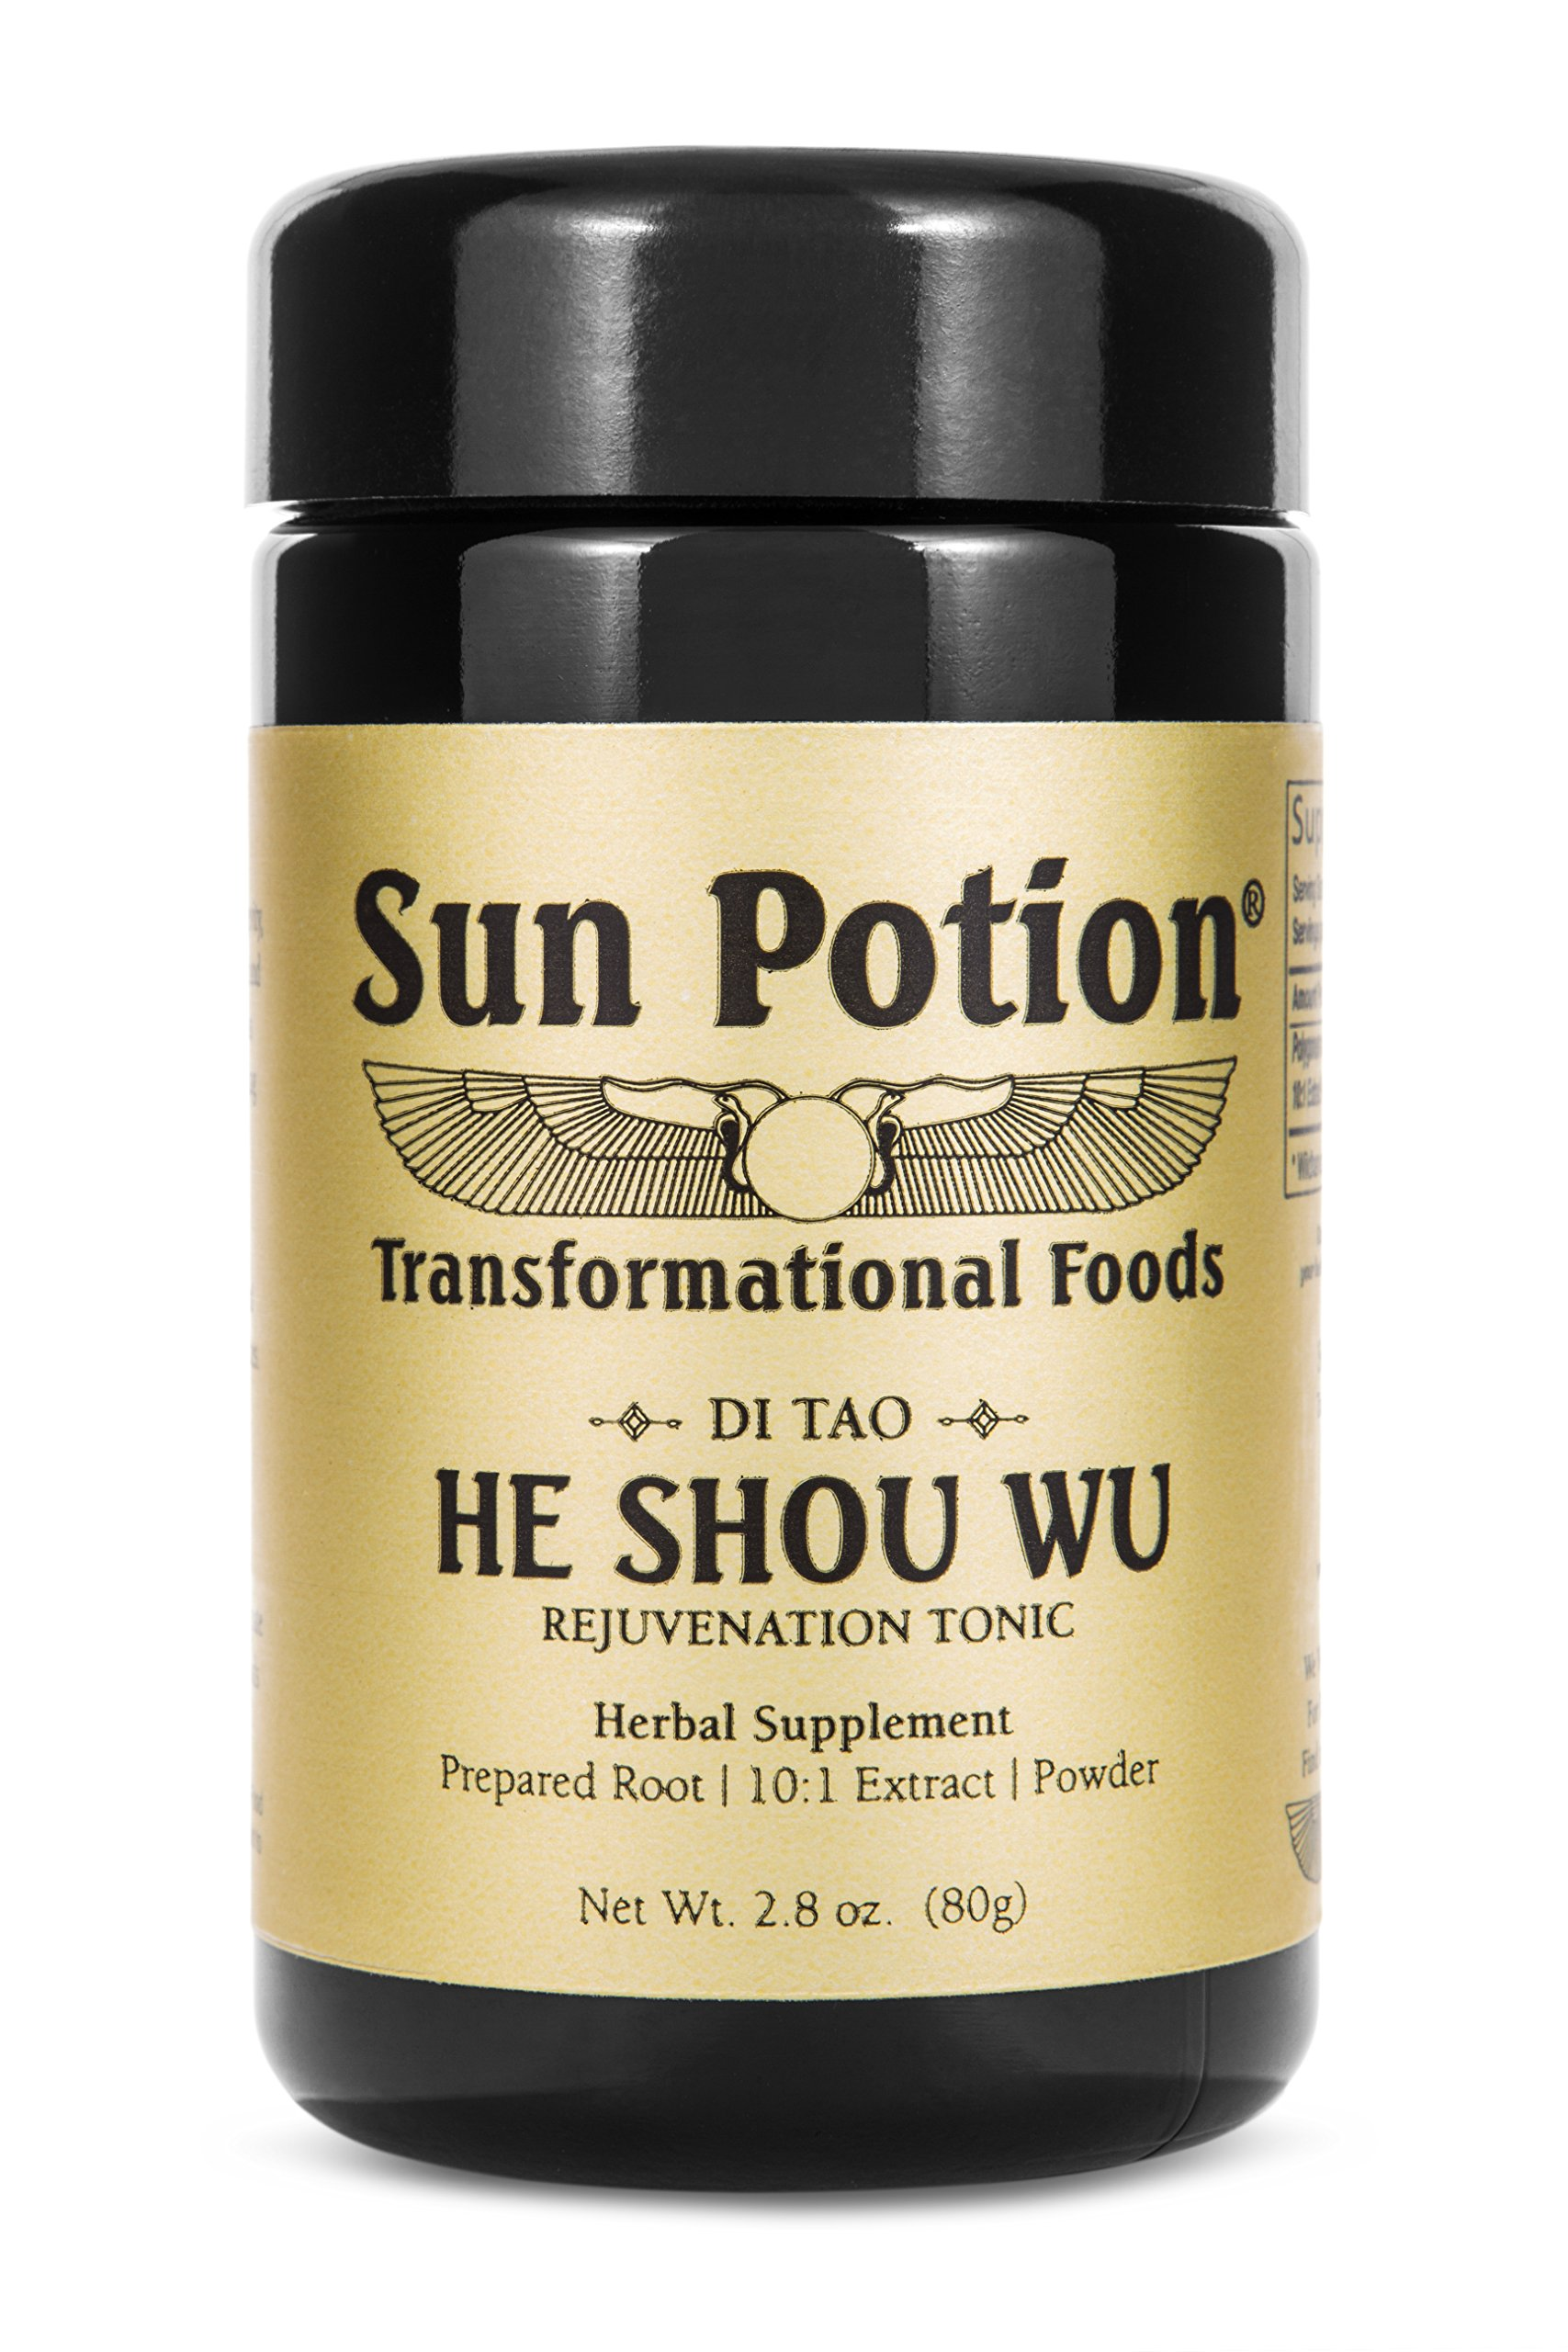 He Shou Wu 80g by Sun Potion - Fo-Ti Tonic, Certified Organic, 10:1 Extract Root Powder, Herbal Supplement, Superfood - Restore Hair Color, Immunity, Boost Energy, Stamina - Vegan Kosher Smoothie Blen